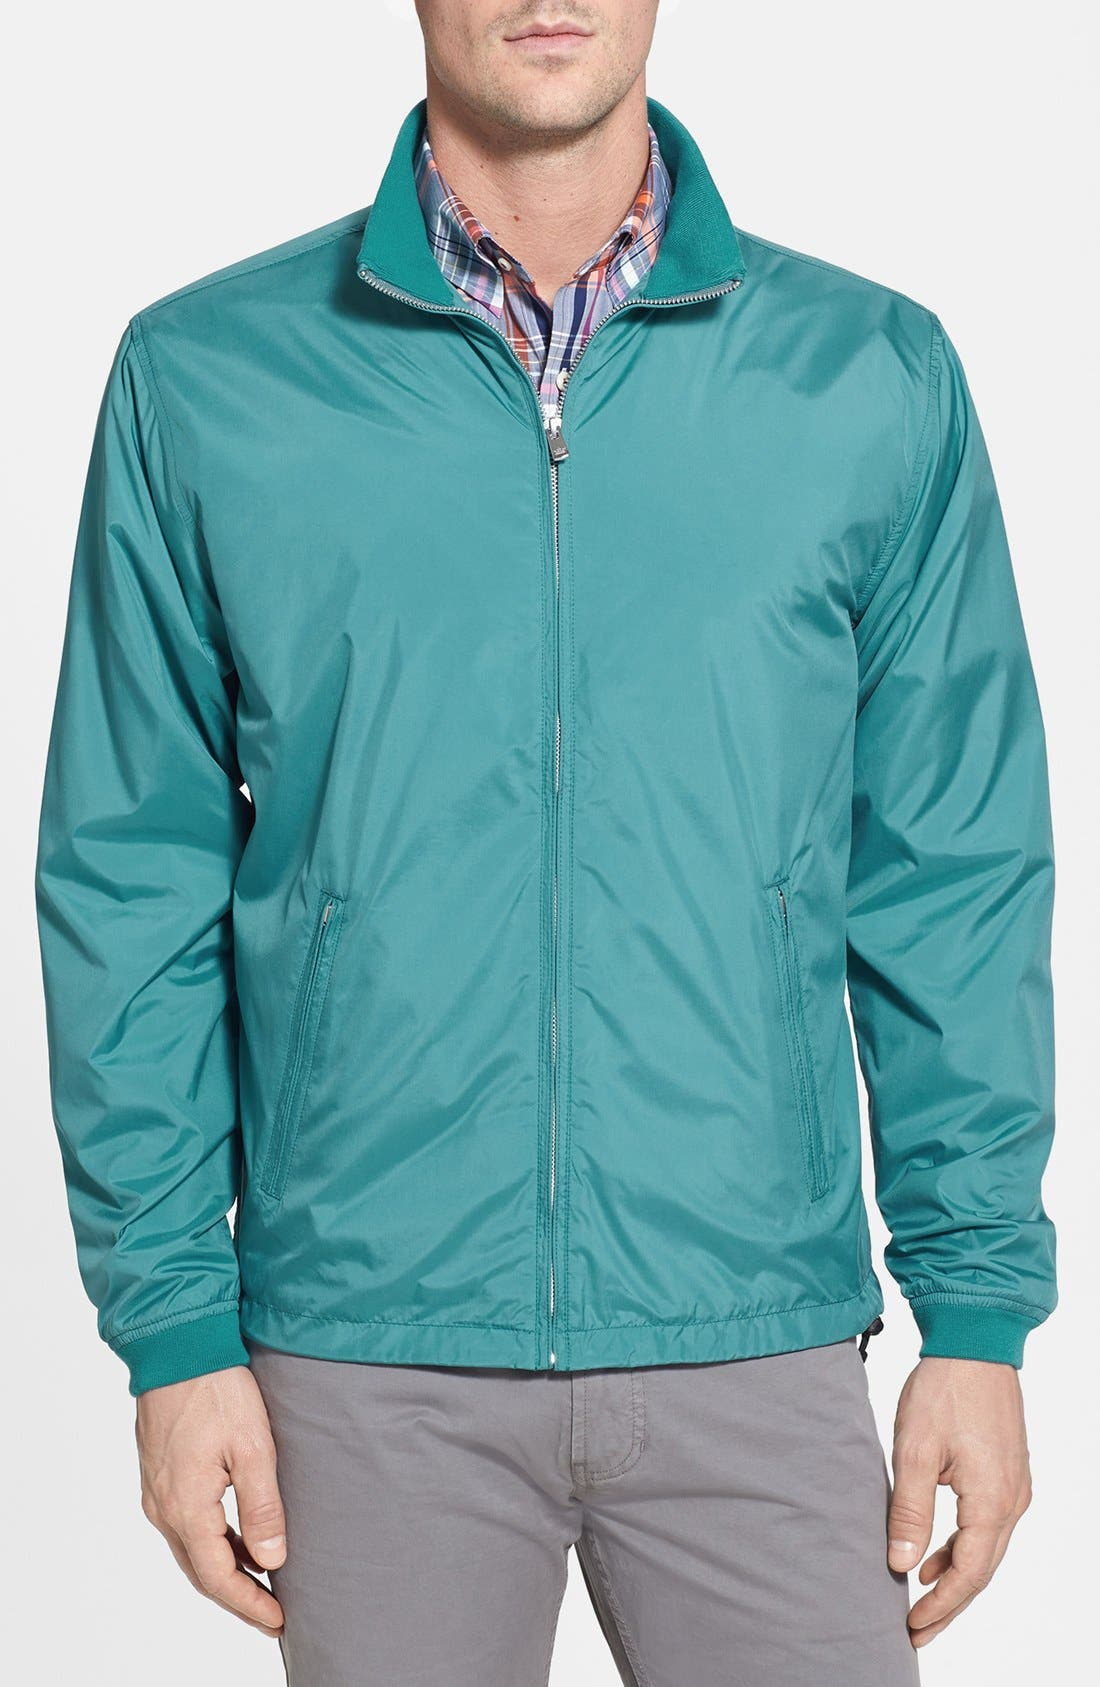 Main Image - Peter Millar 'Rally' Bomber Jacket